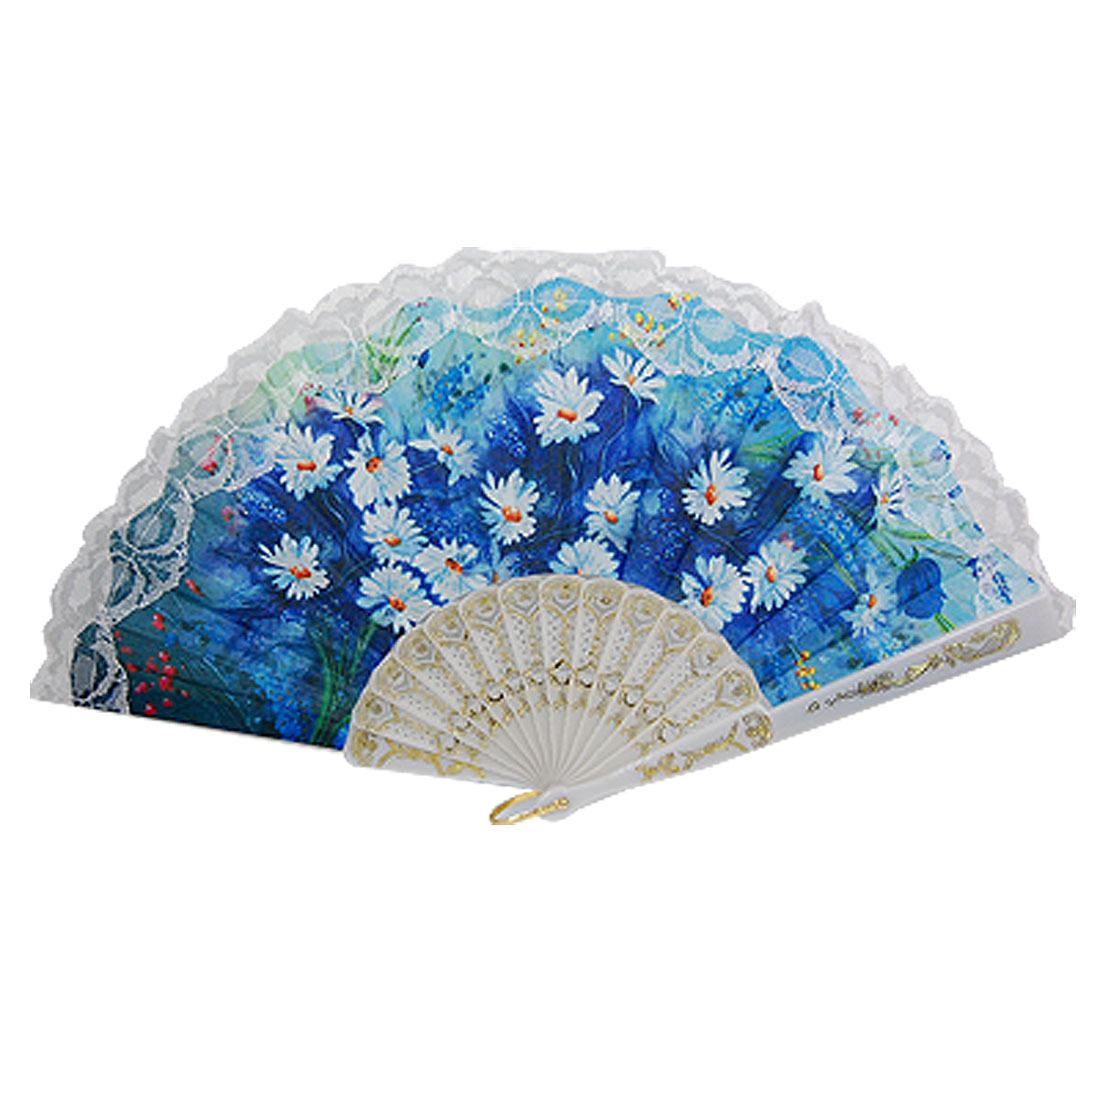 Hollow Plastic Ribs White Flower Print Blue Hand Fan